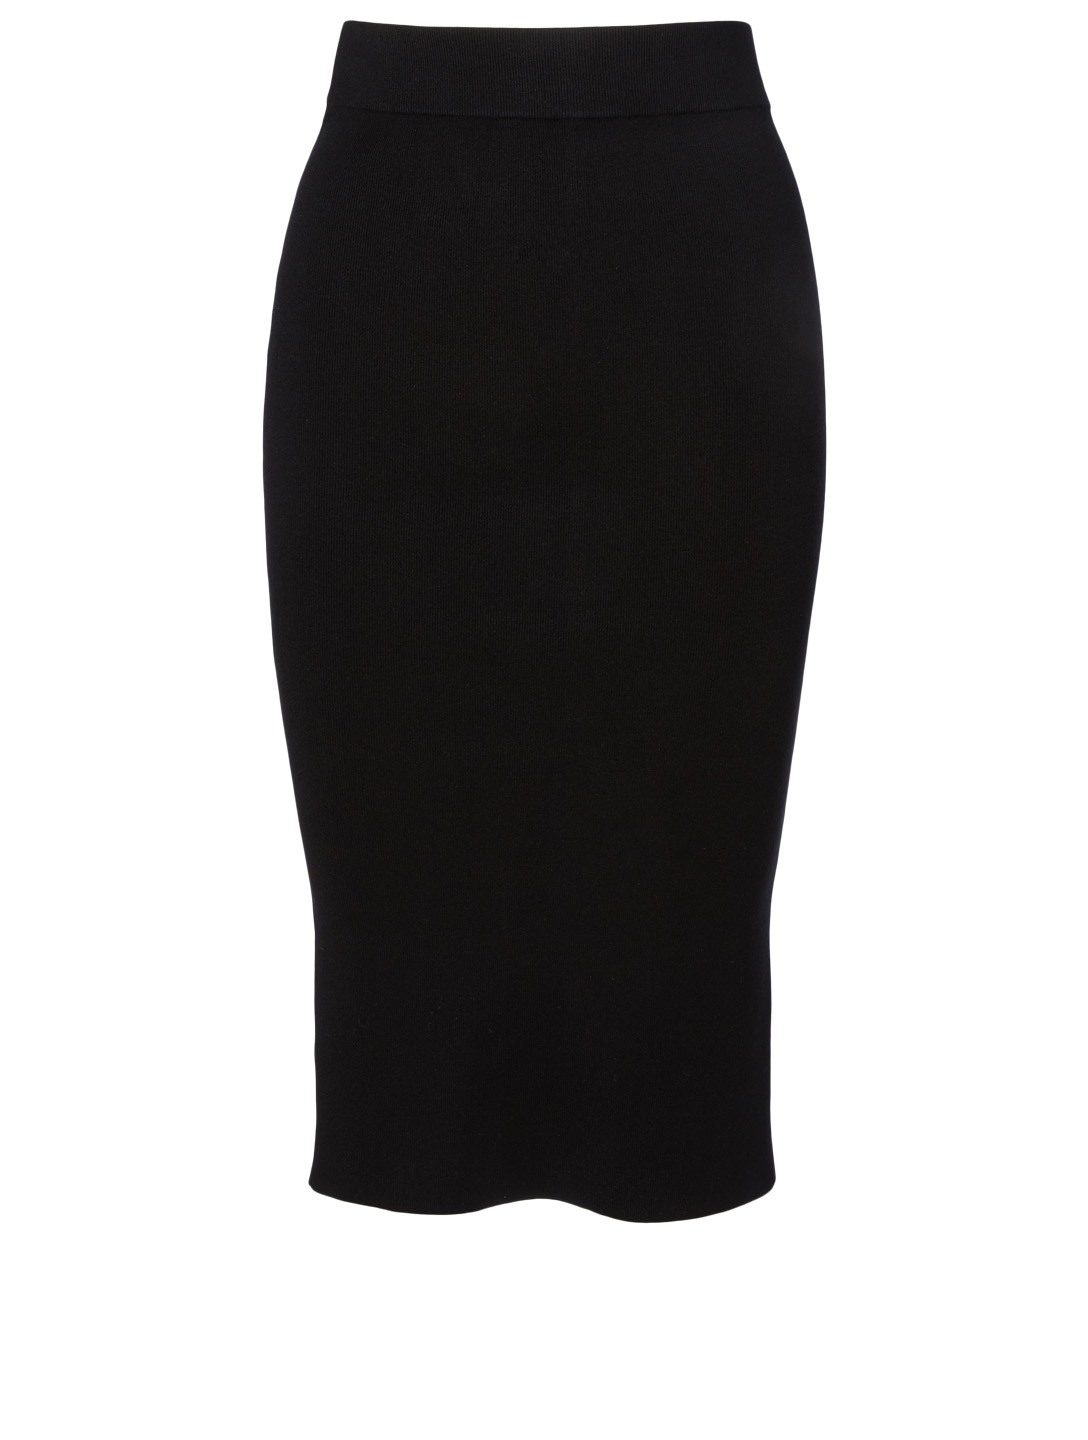 ALEXANDERWANG.T Bodycon Midi Logo Skirt Women's Black